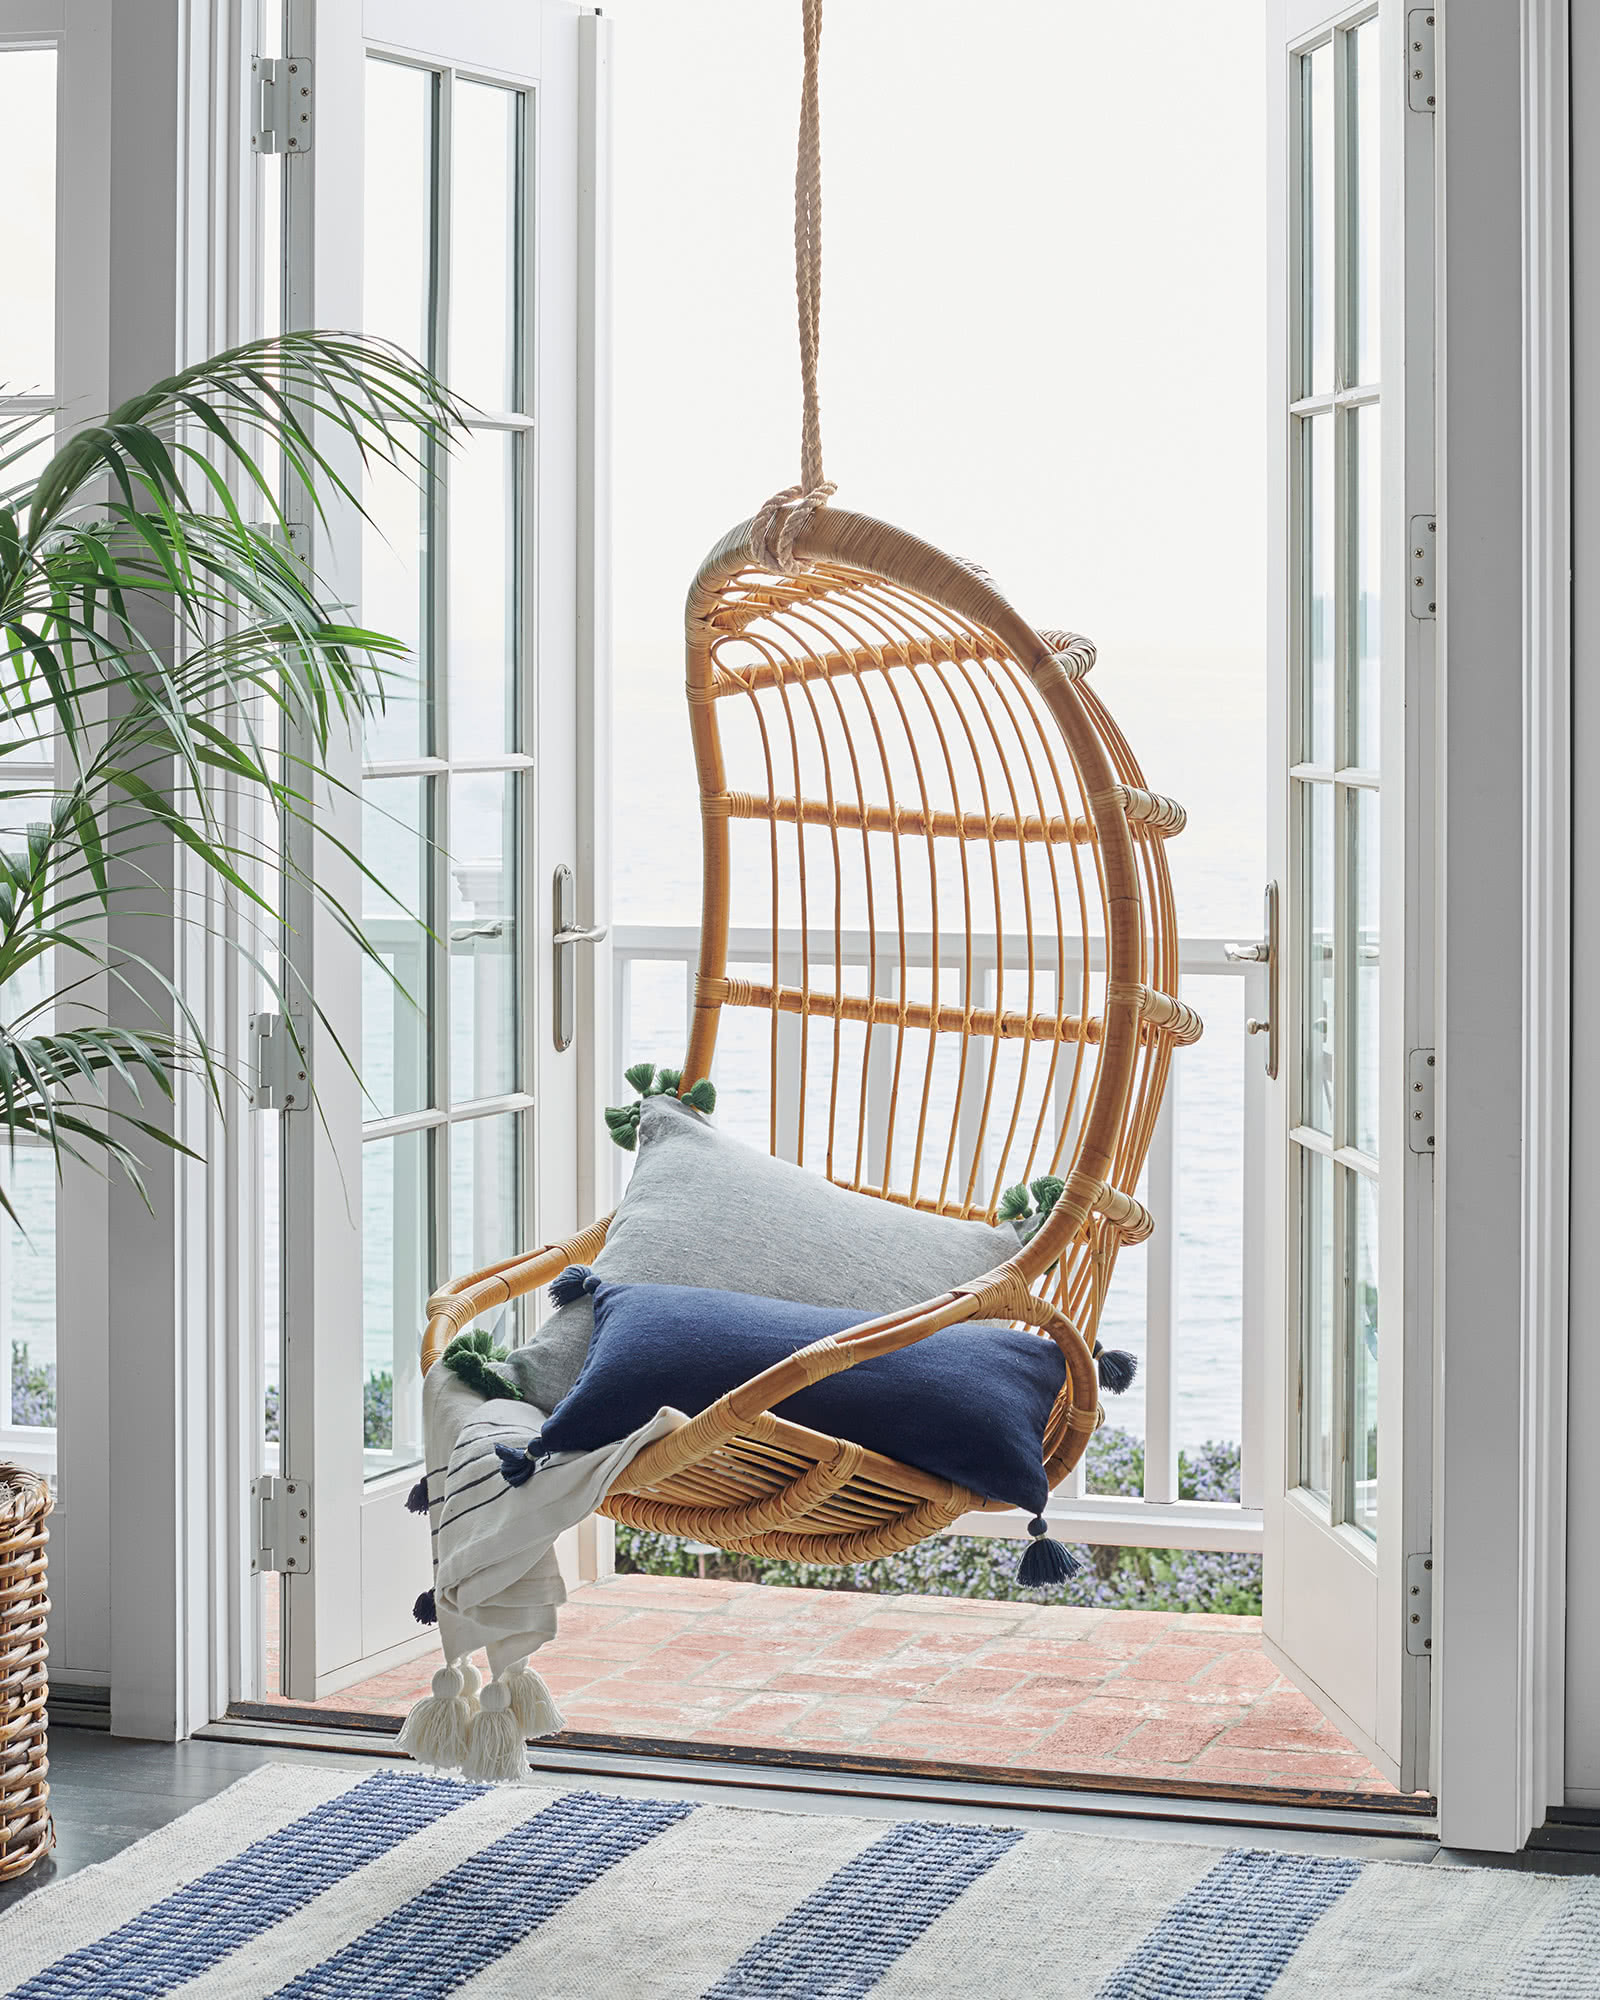 Hanging rattan chair in a glorious coastal home with French doors opening to a waterfront balcony.